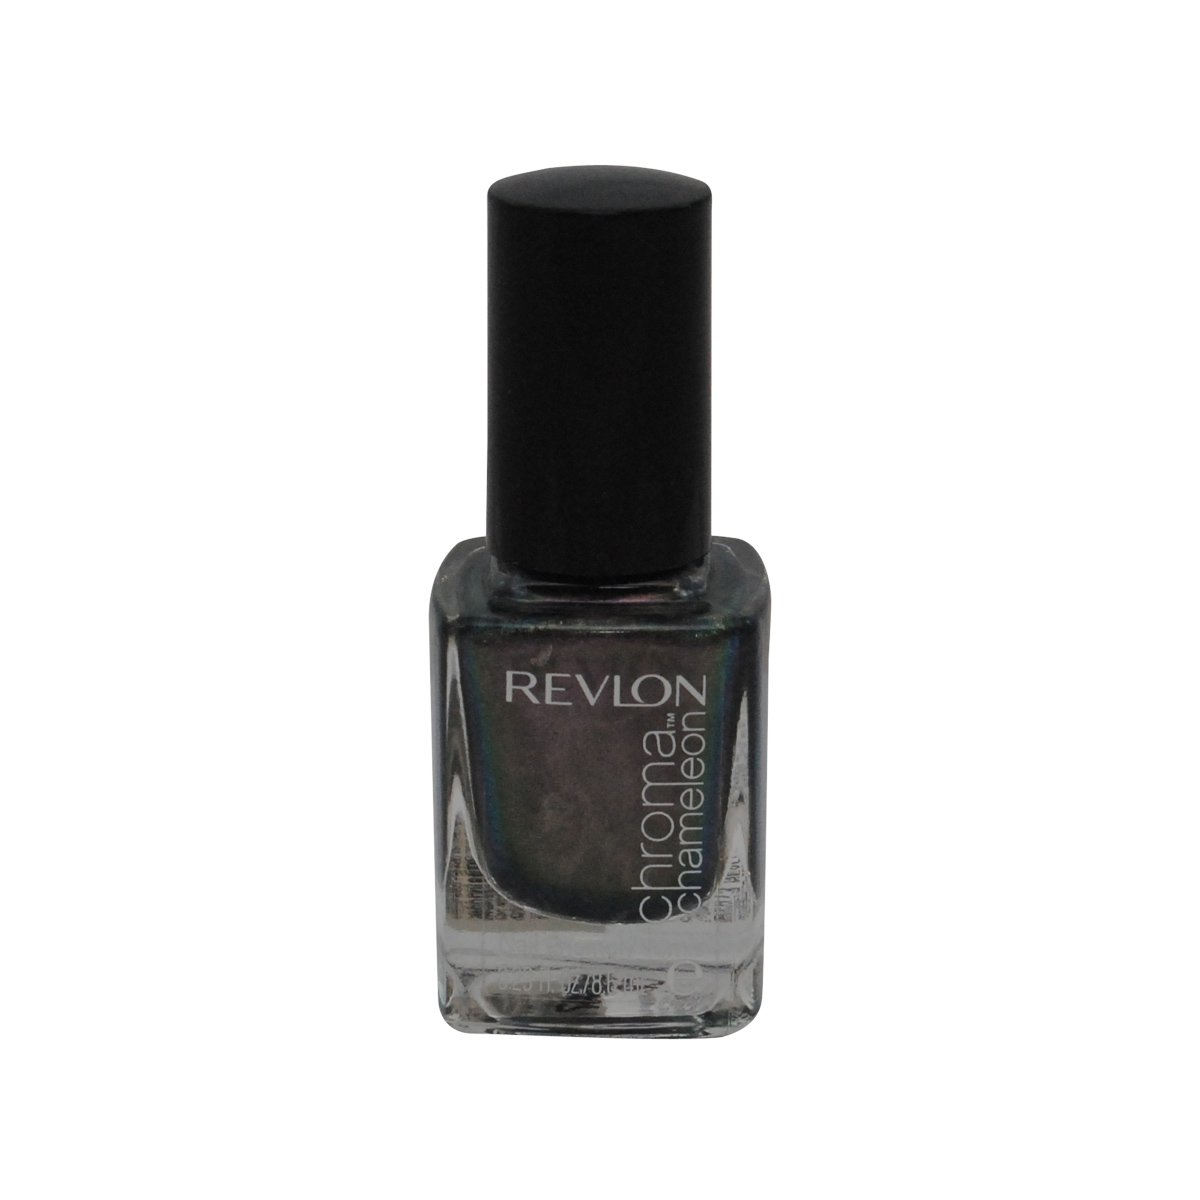 Amazon.com : NEW Revlon Chroma Chameleon Limited Edition Nail Enamel ...